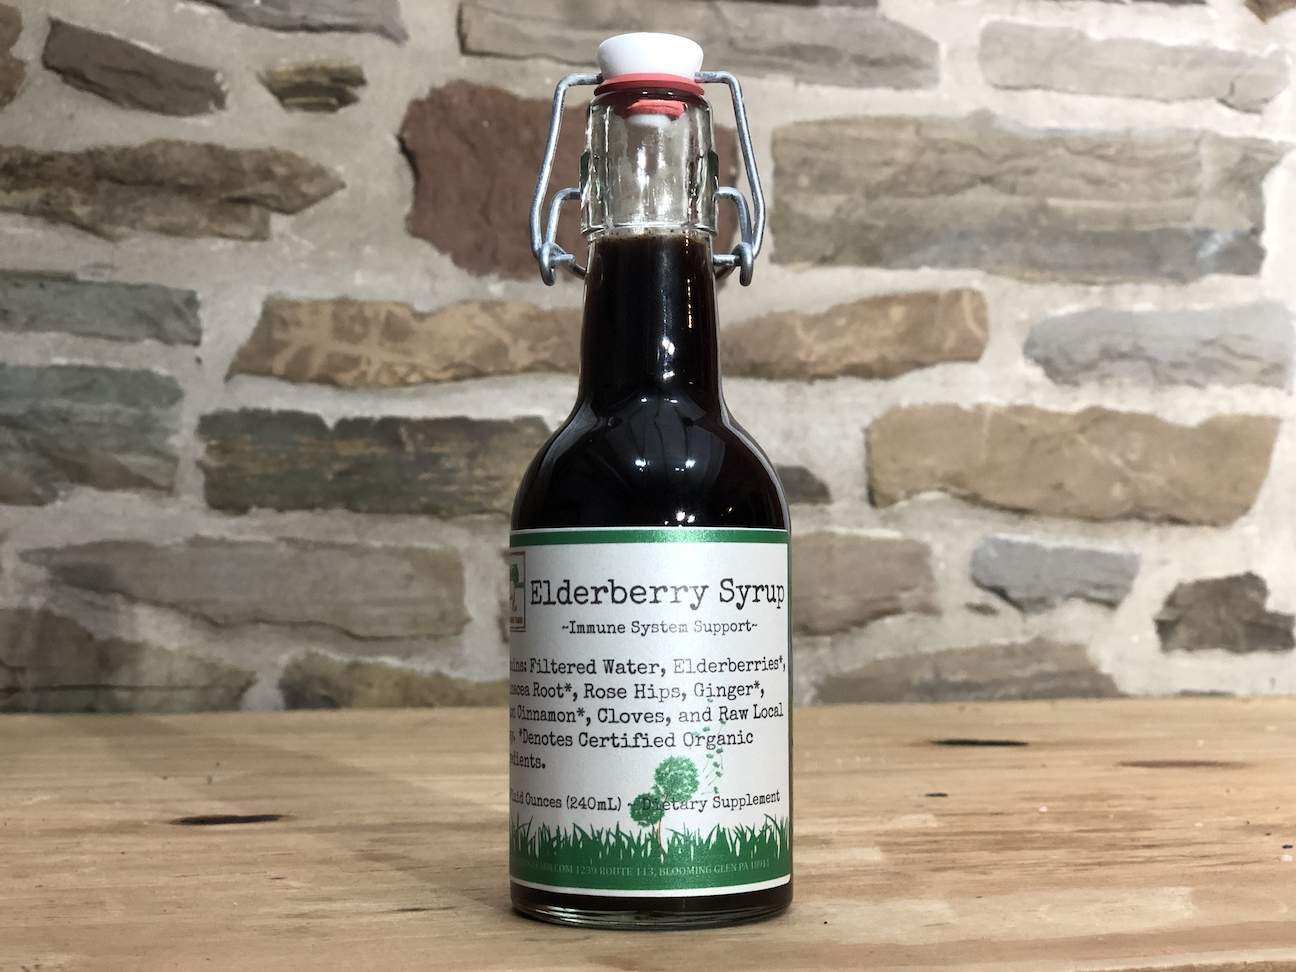 Elderberry Syrup, Hot Sauces, Farm Gear, and More!